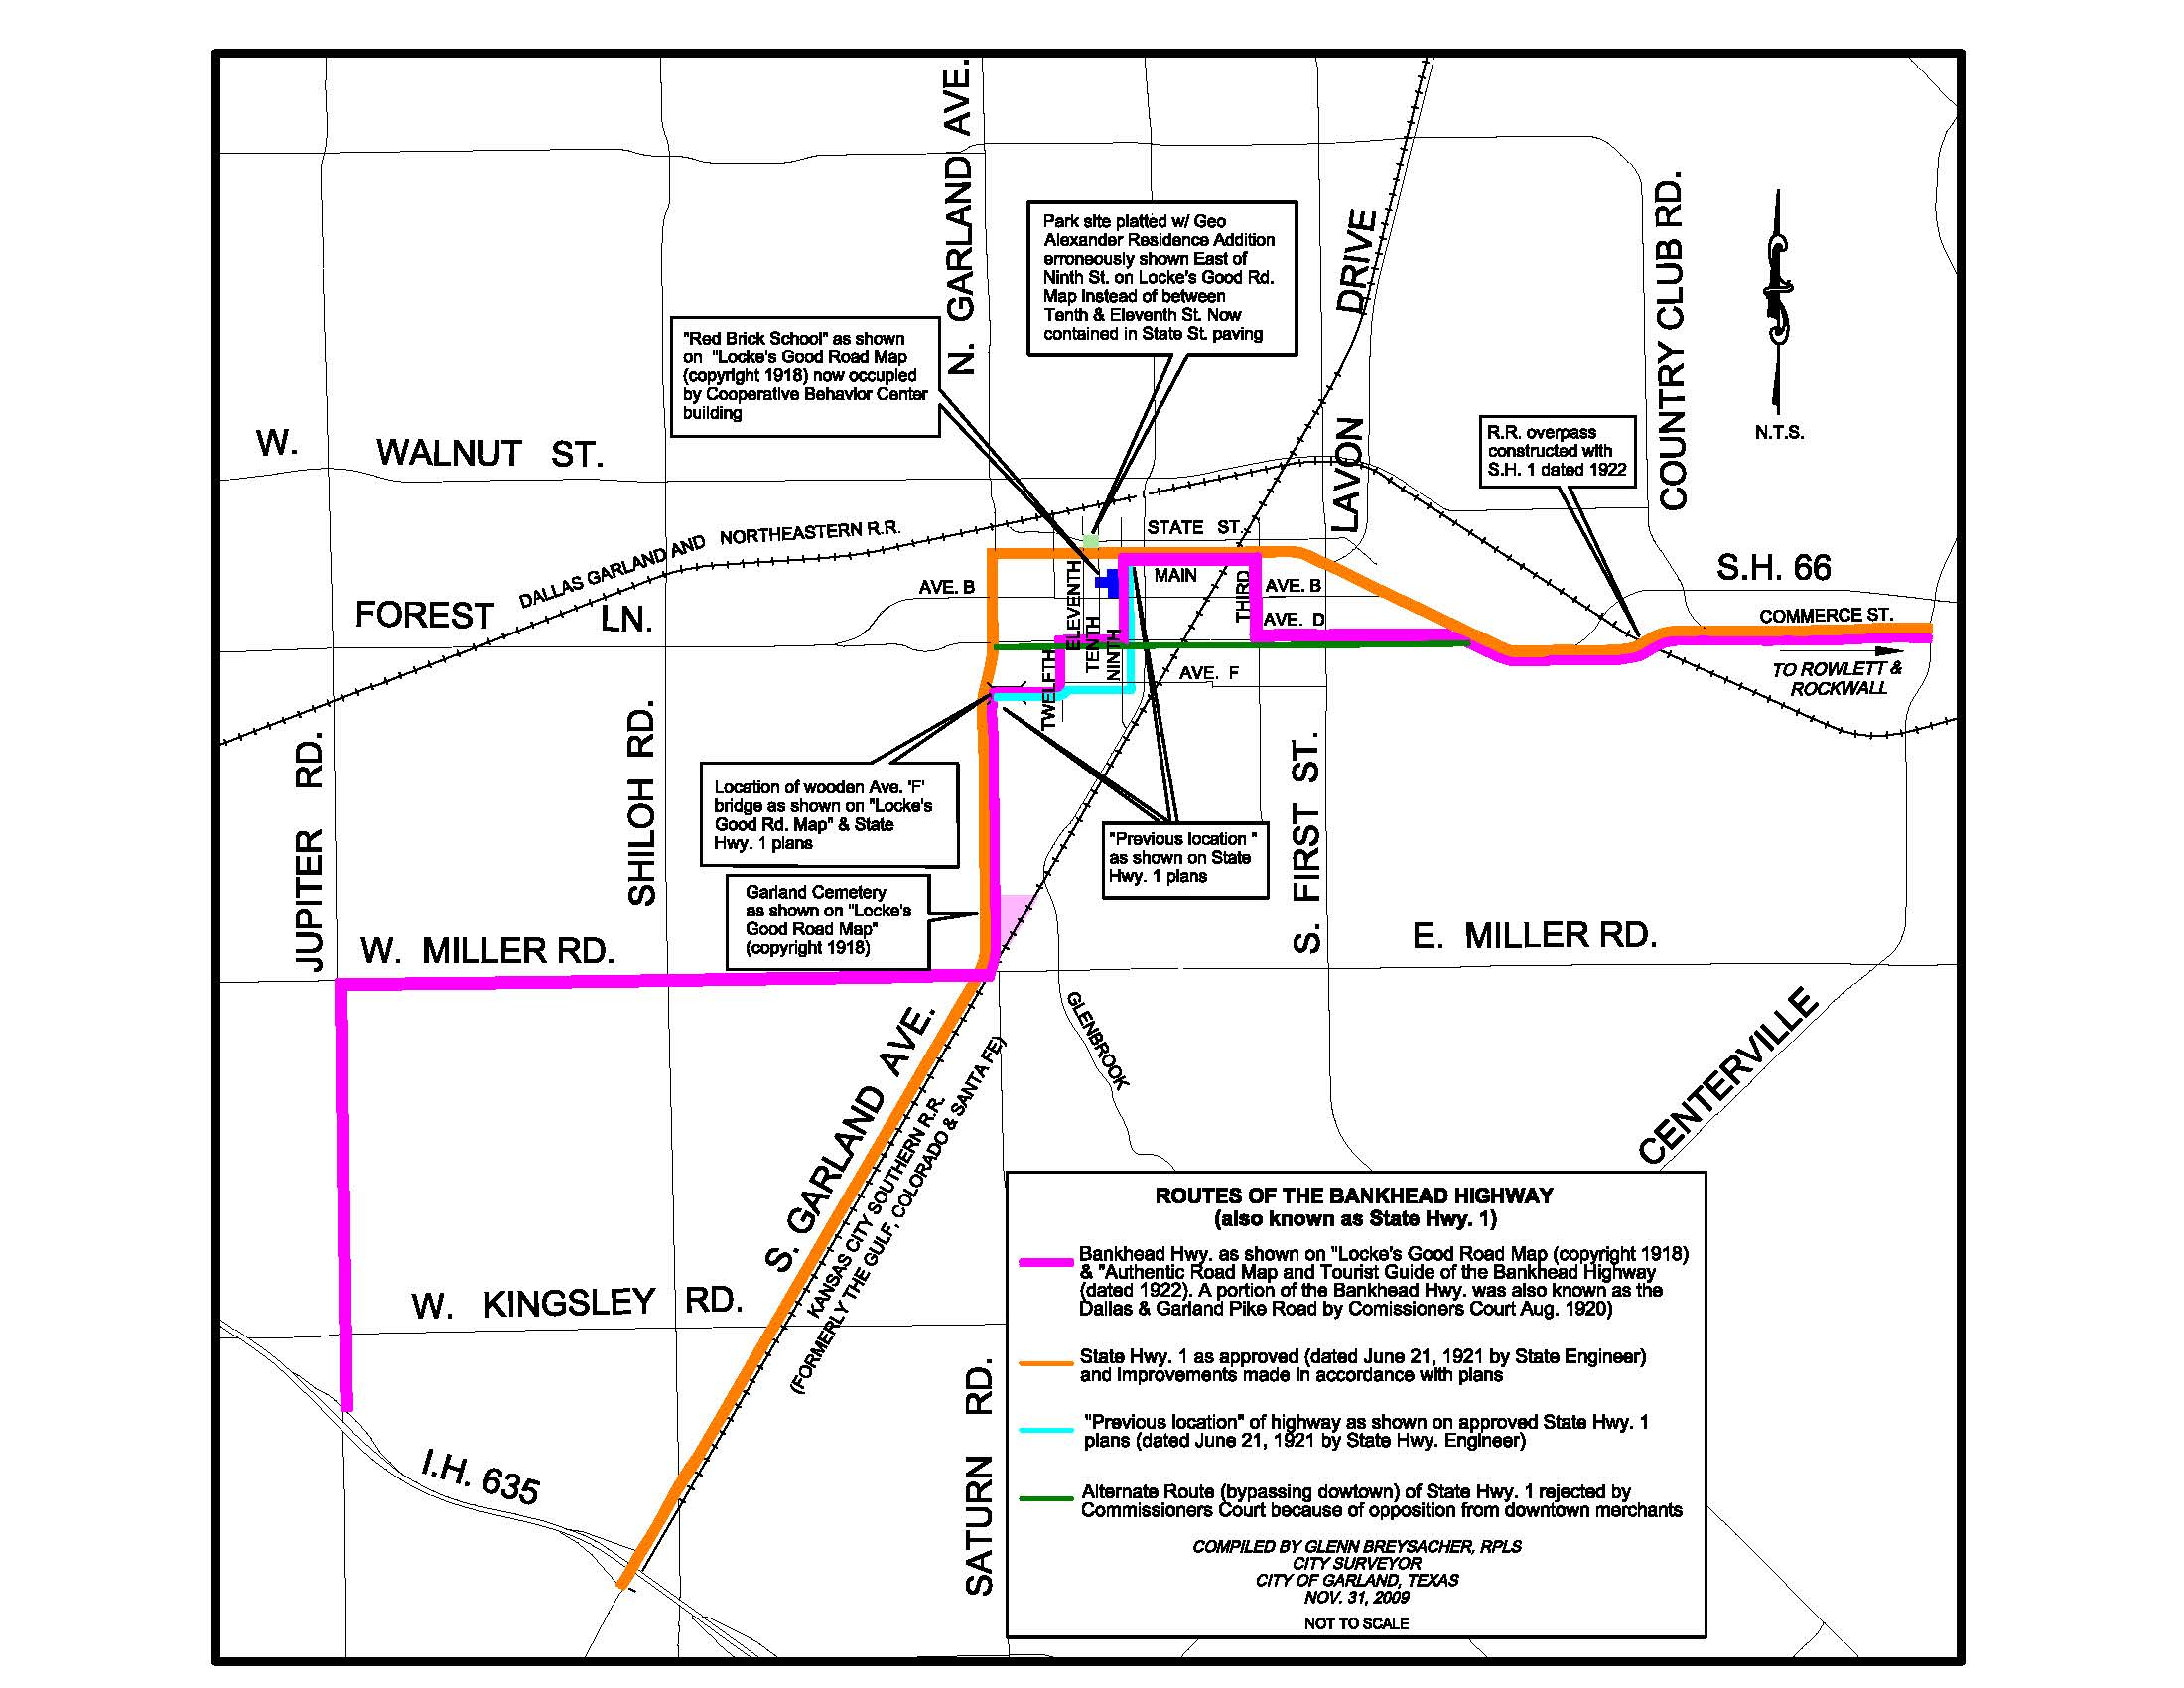 Map of Bankhead Highway Going through Garland